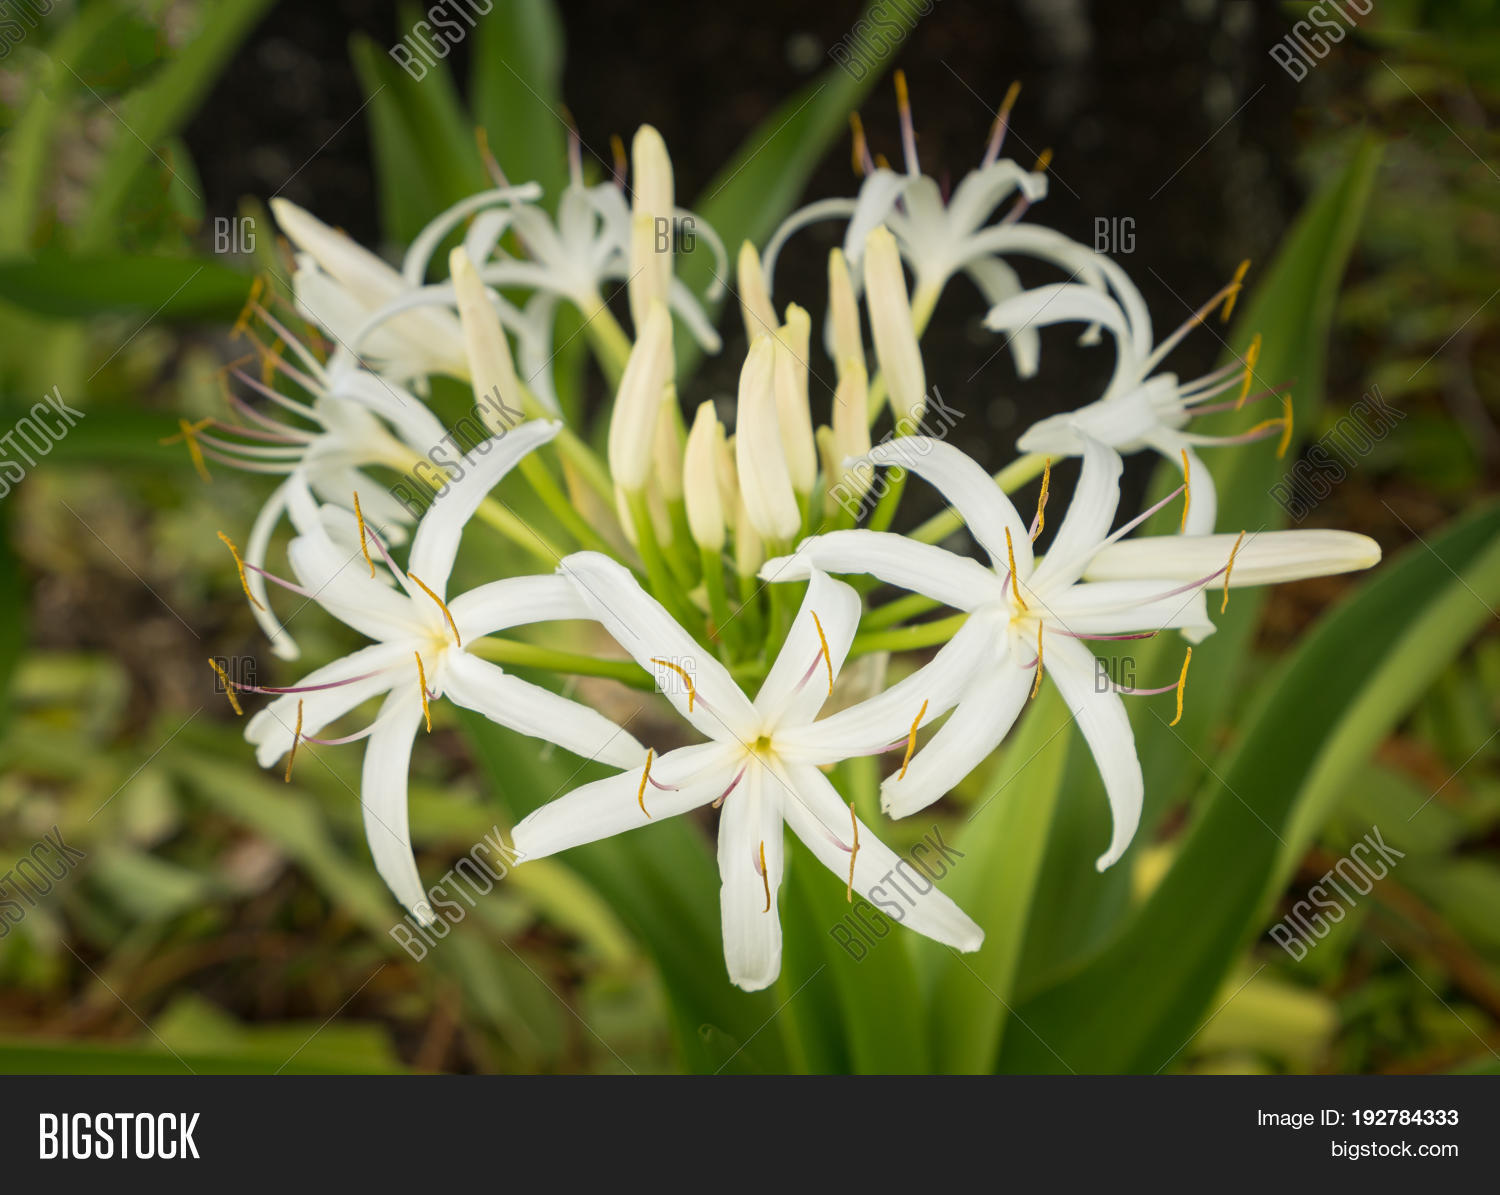 White Spider Lily Image Photo Free Trial Bigstock